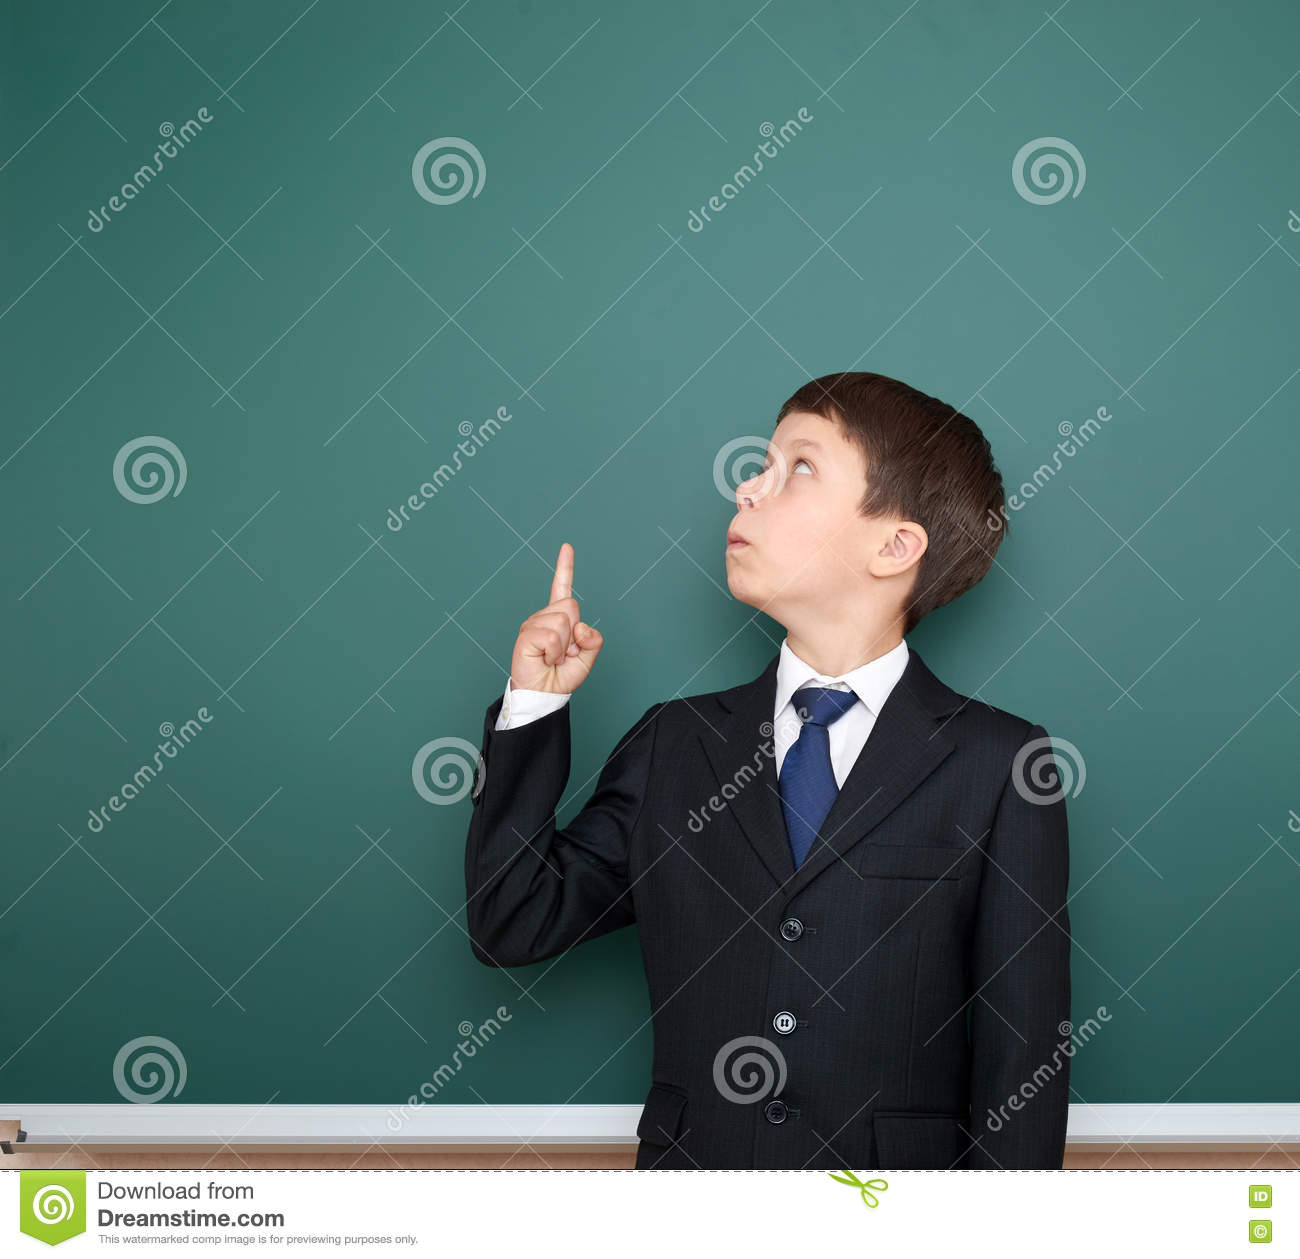 School boy in black suit show finger up gesture and wonder, point on green chalkboard background, education concept